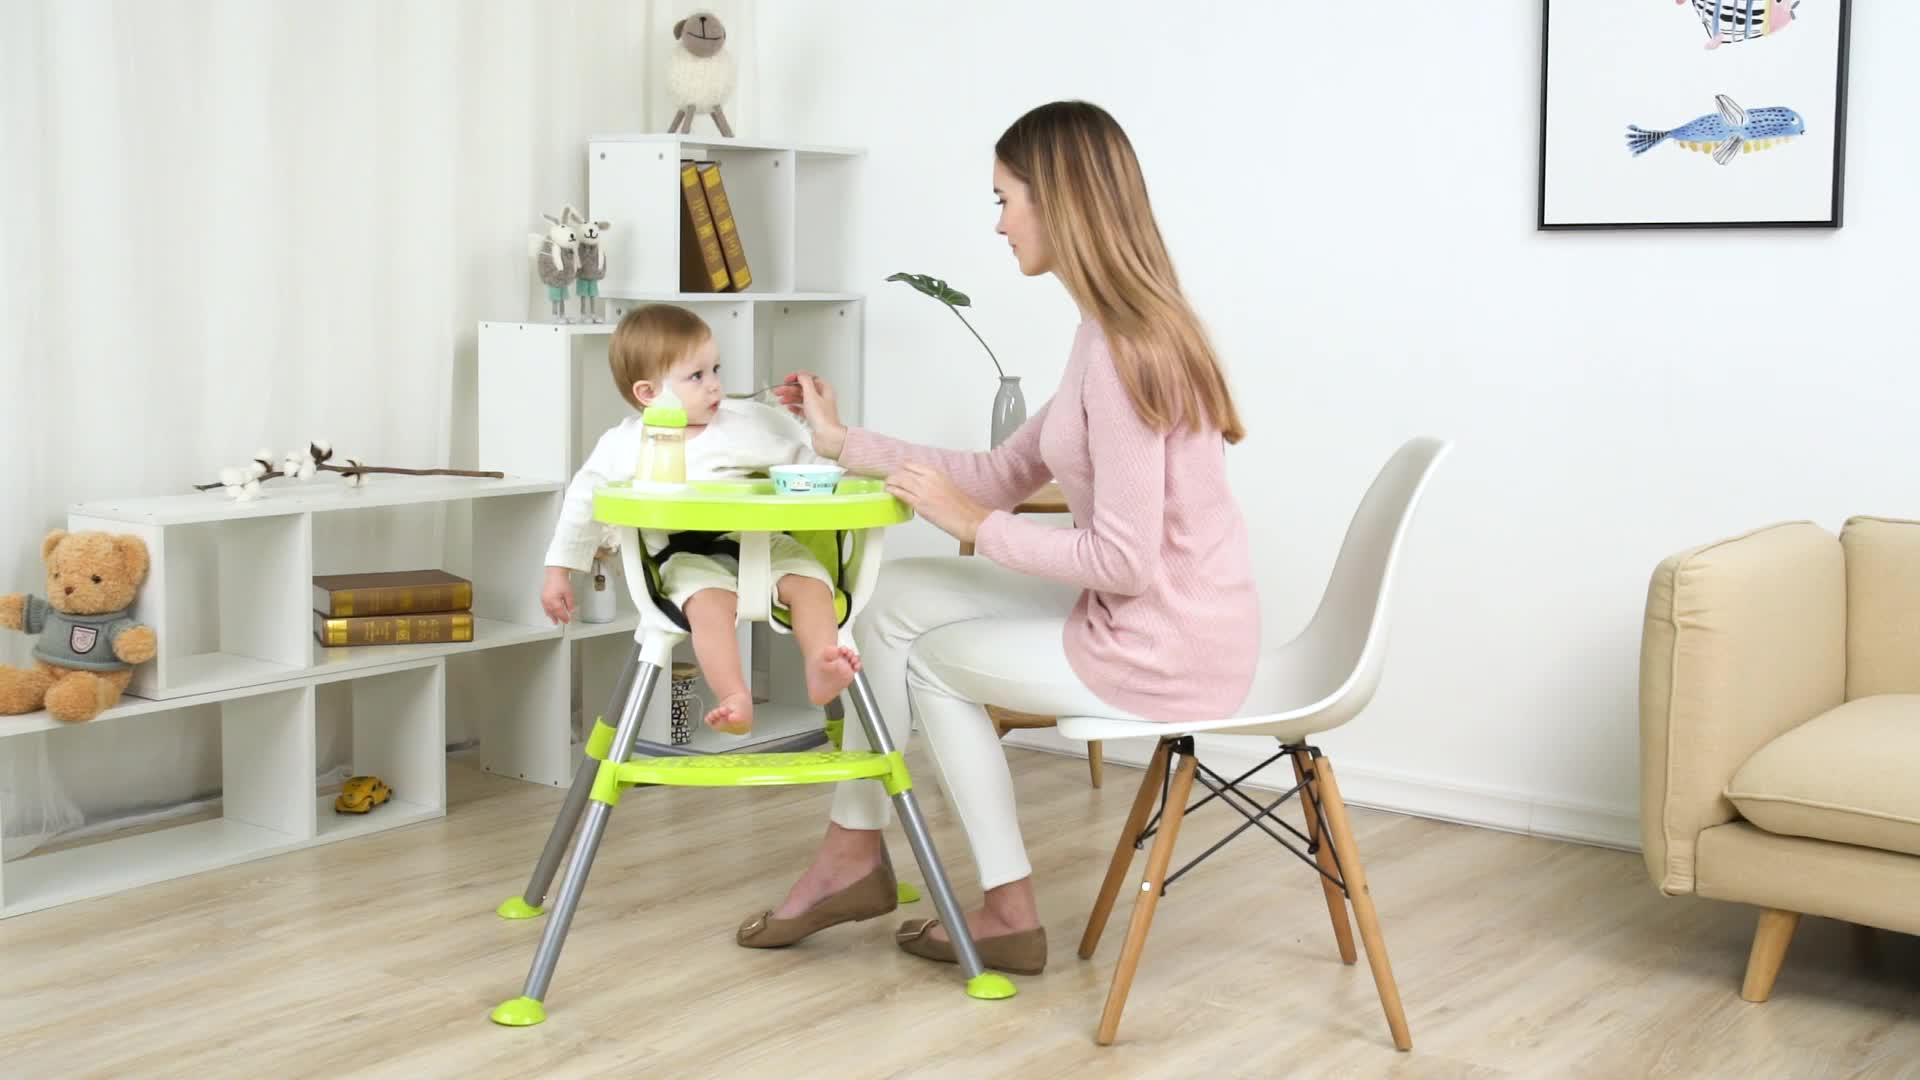 high chair buy baby sleeper chairs wholesale eco friendly with cushion